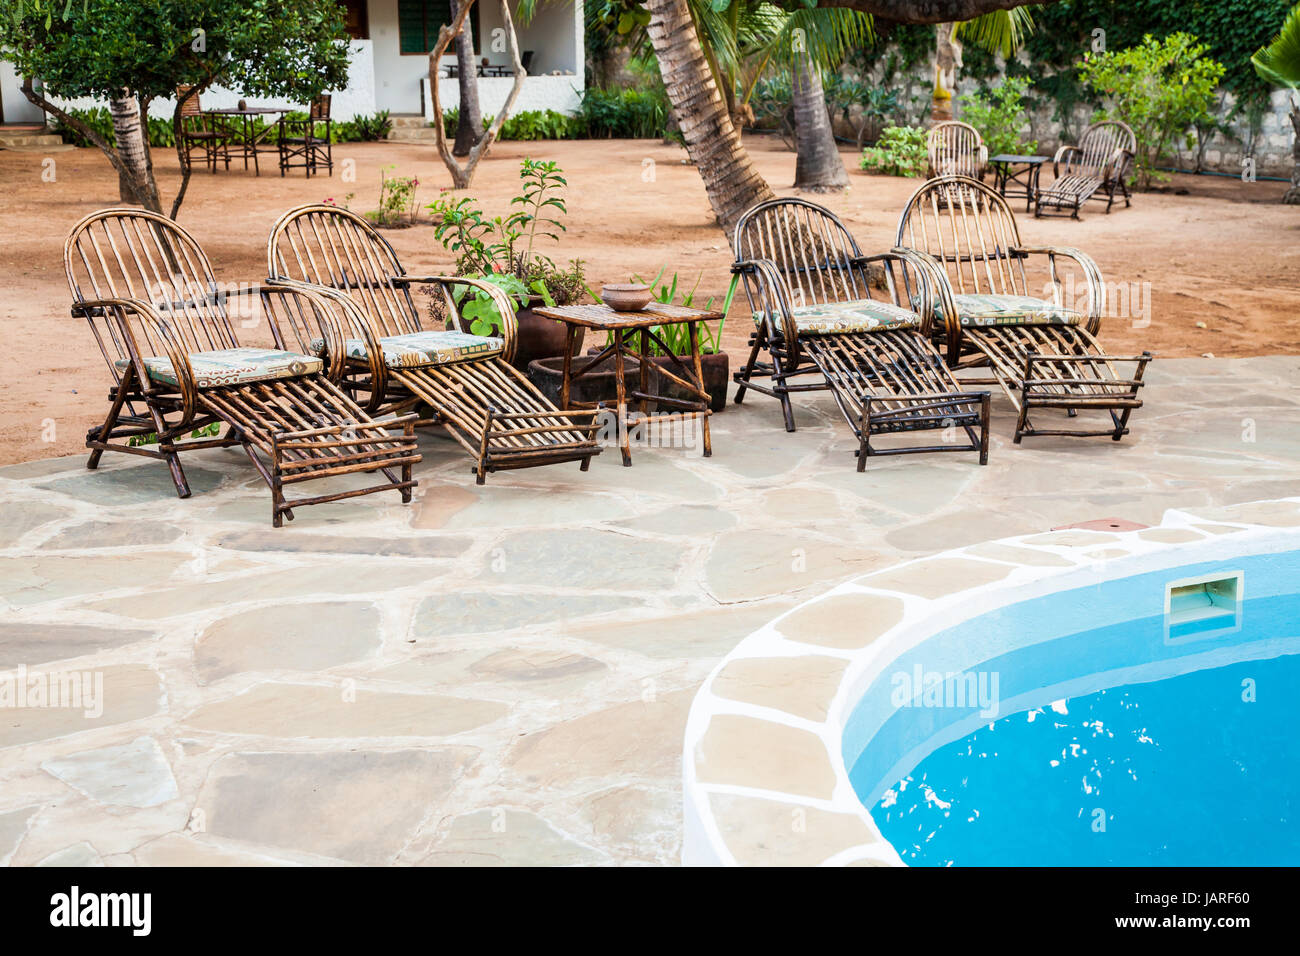 what are pool chairs made out of comfy outdoor chair elegant wood close to a swimming inside kenyan garden